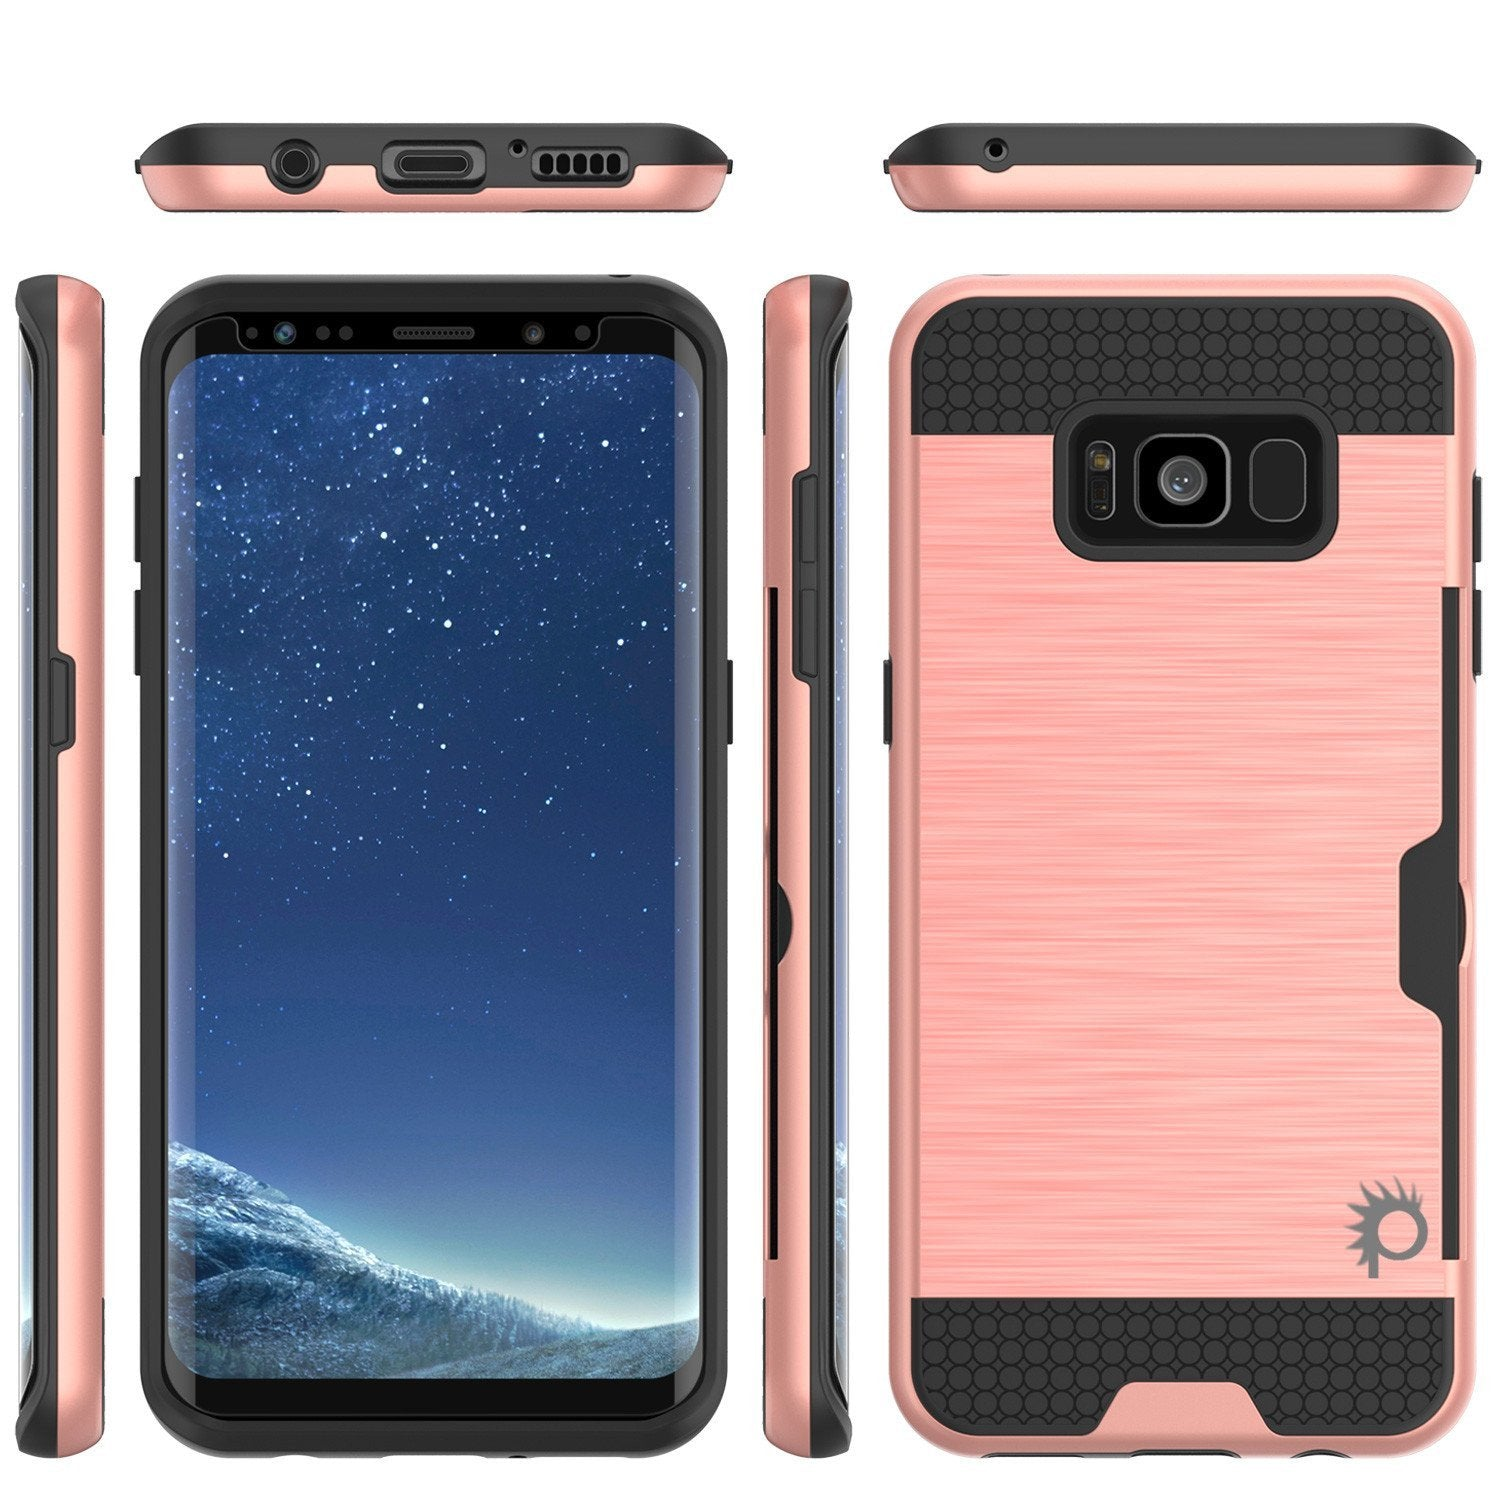 Galaxy S8 Case, PUNKcase [SLOT Series] Dual-Layer Armor Cover w/Integrated Anti-Shock System, Credit Card Slot & Screen Protector [Rose Gold]